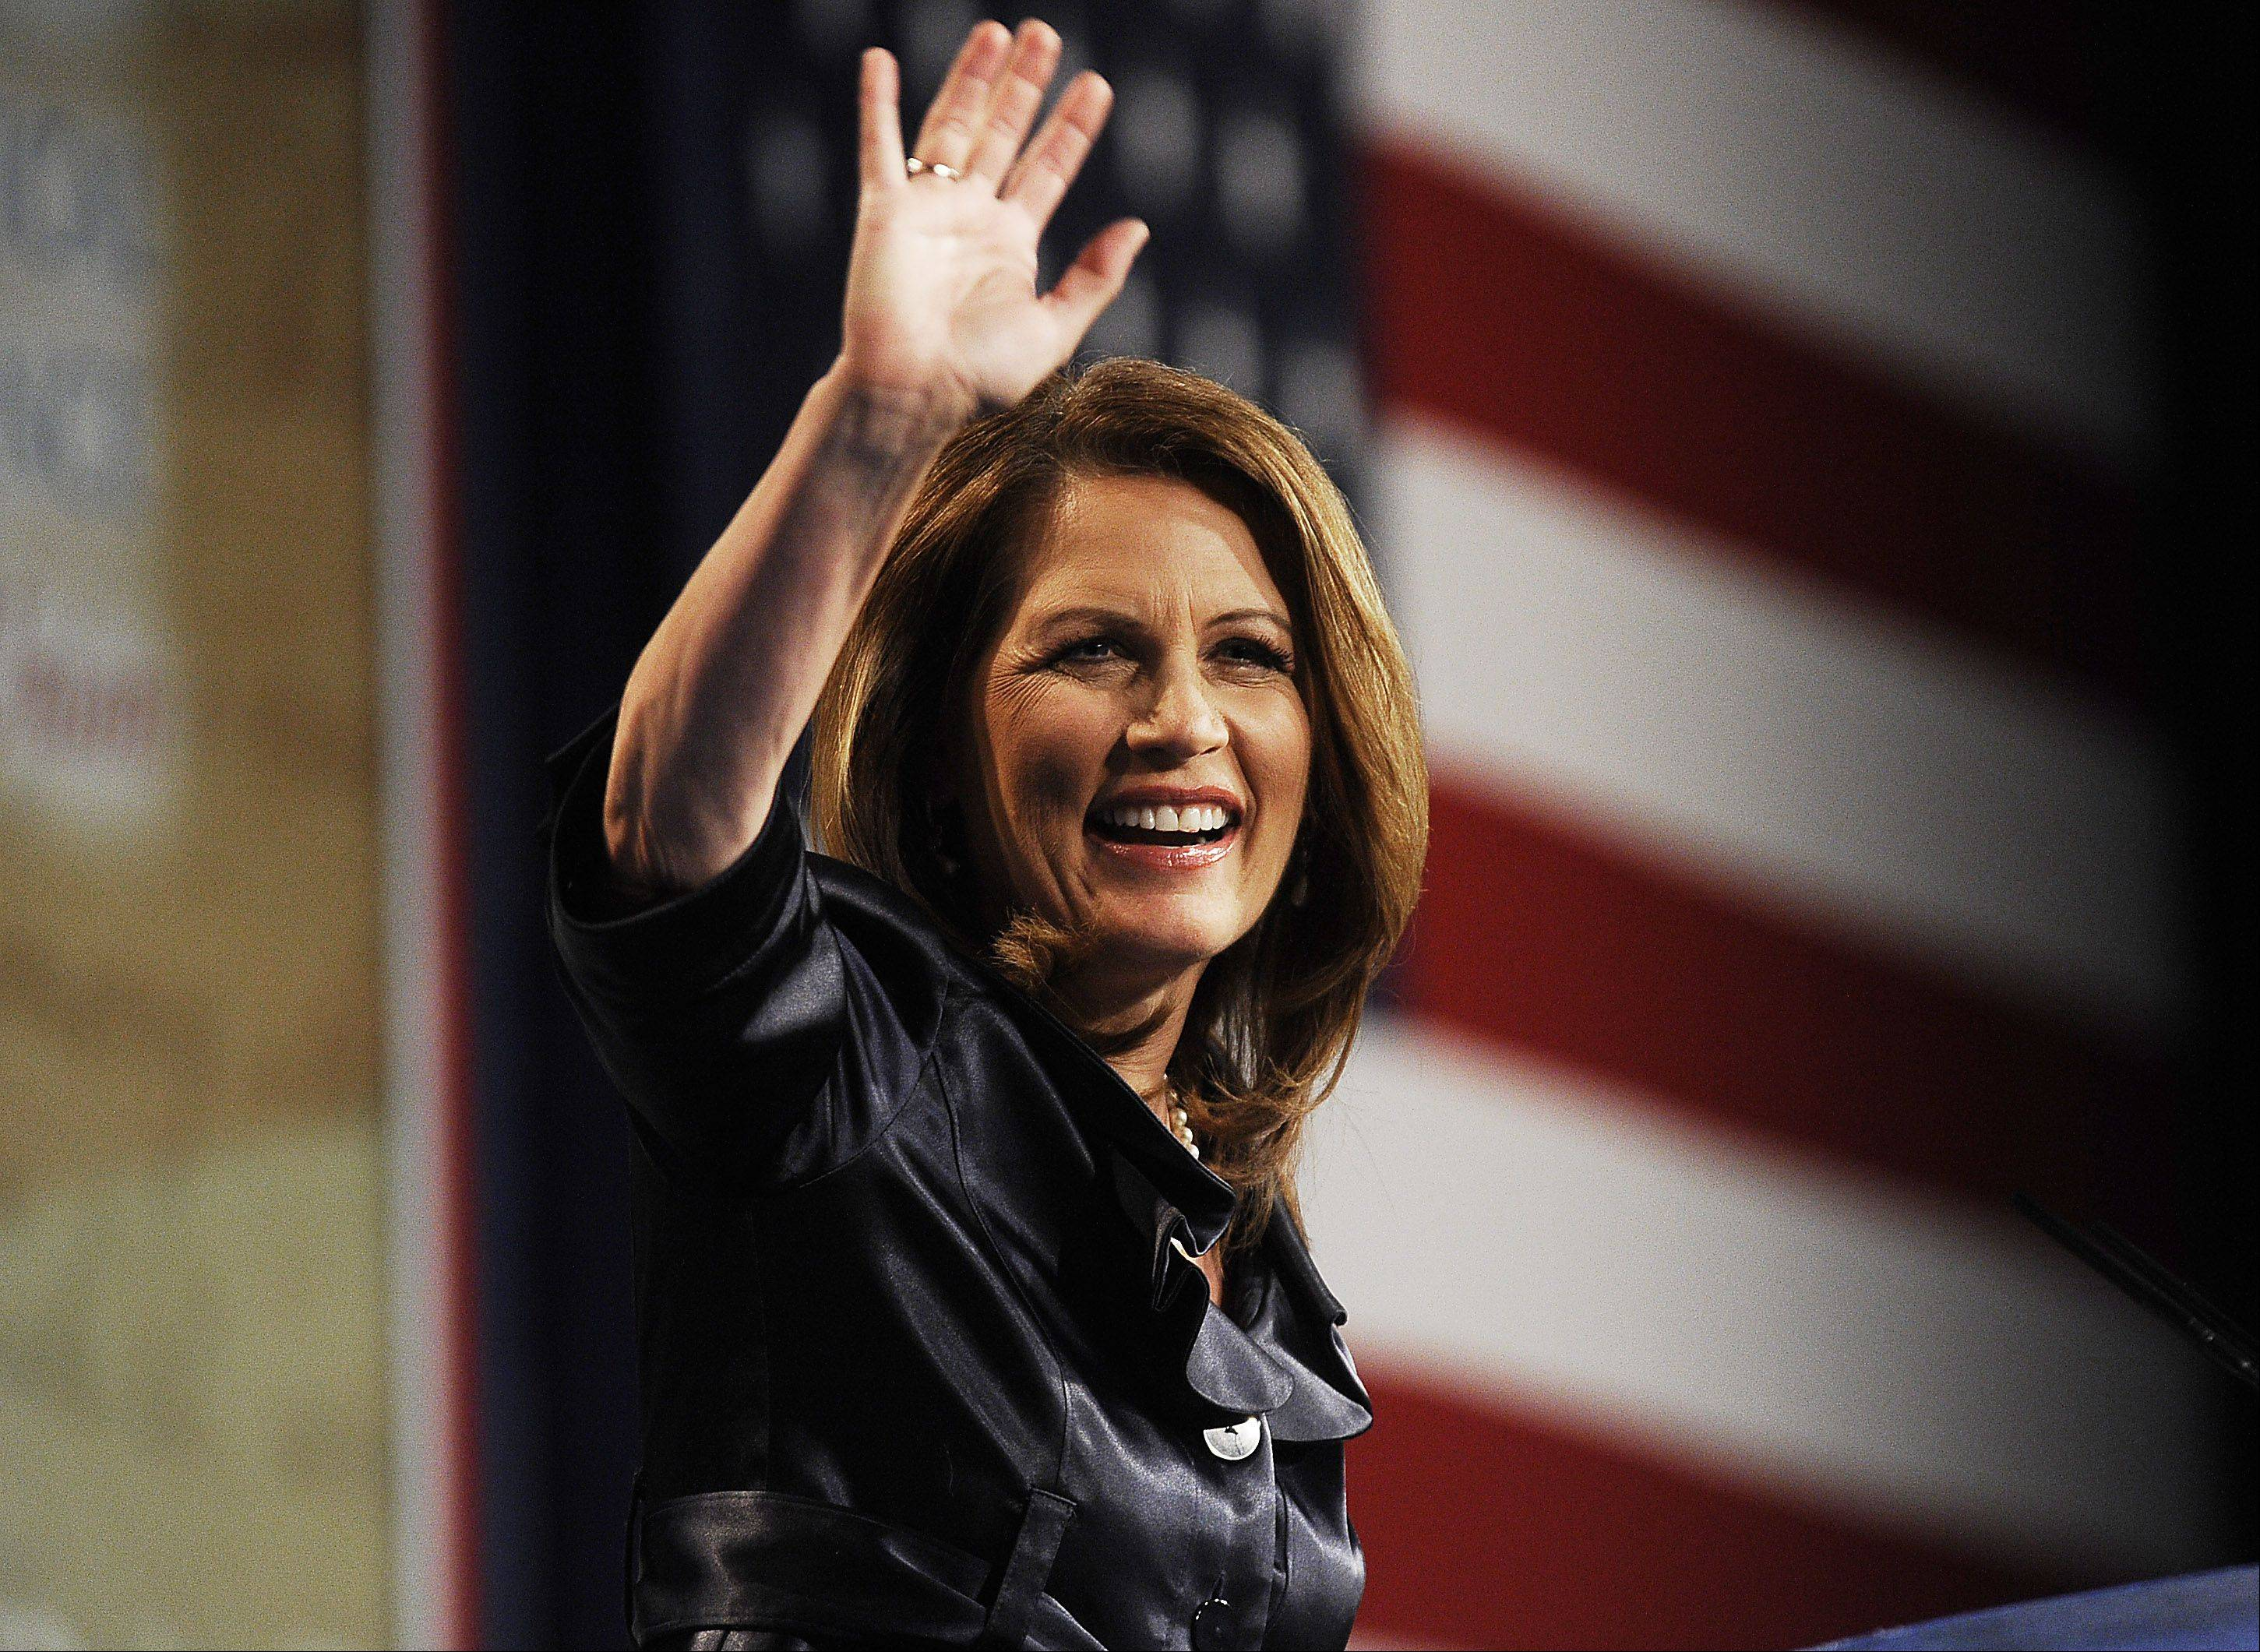 Former Republican presidential candidate Michele Bachmann speaks at the CPAC Chicago's Conservative Political Action Conference on Friday at the Stephens Convention Center in Rosemont.